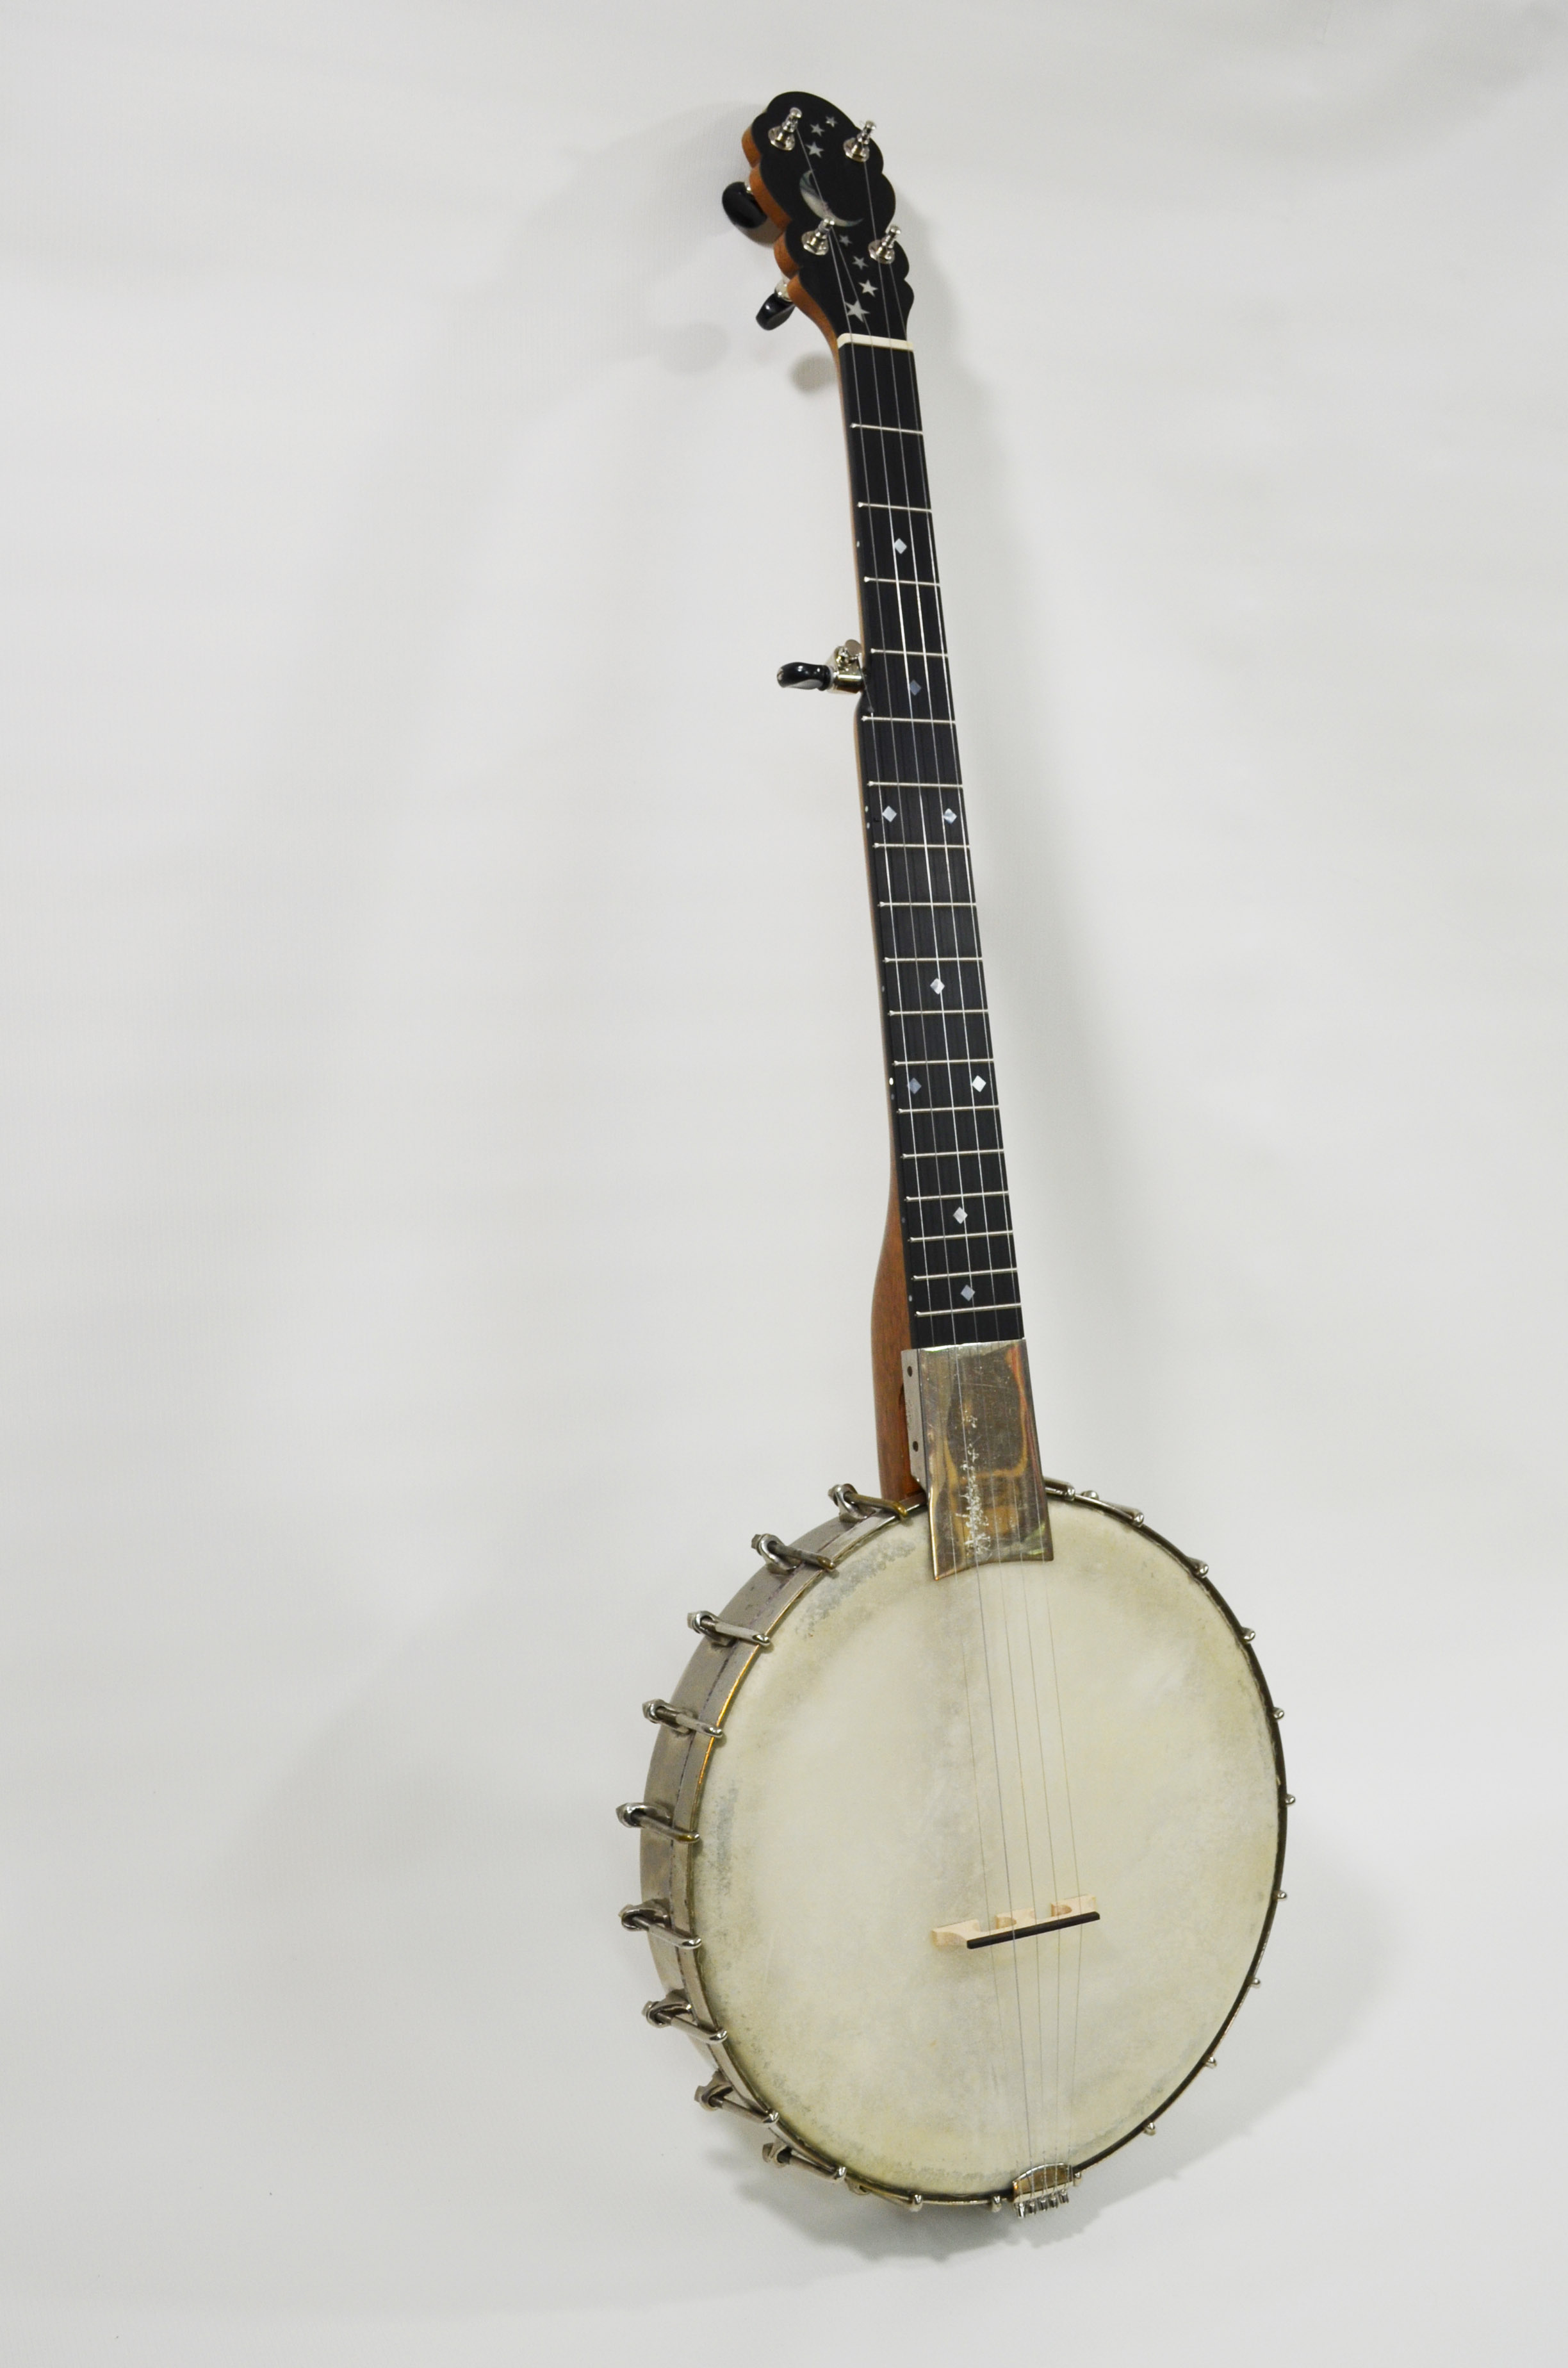 Dobson-style neck with original pot